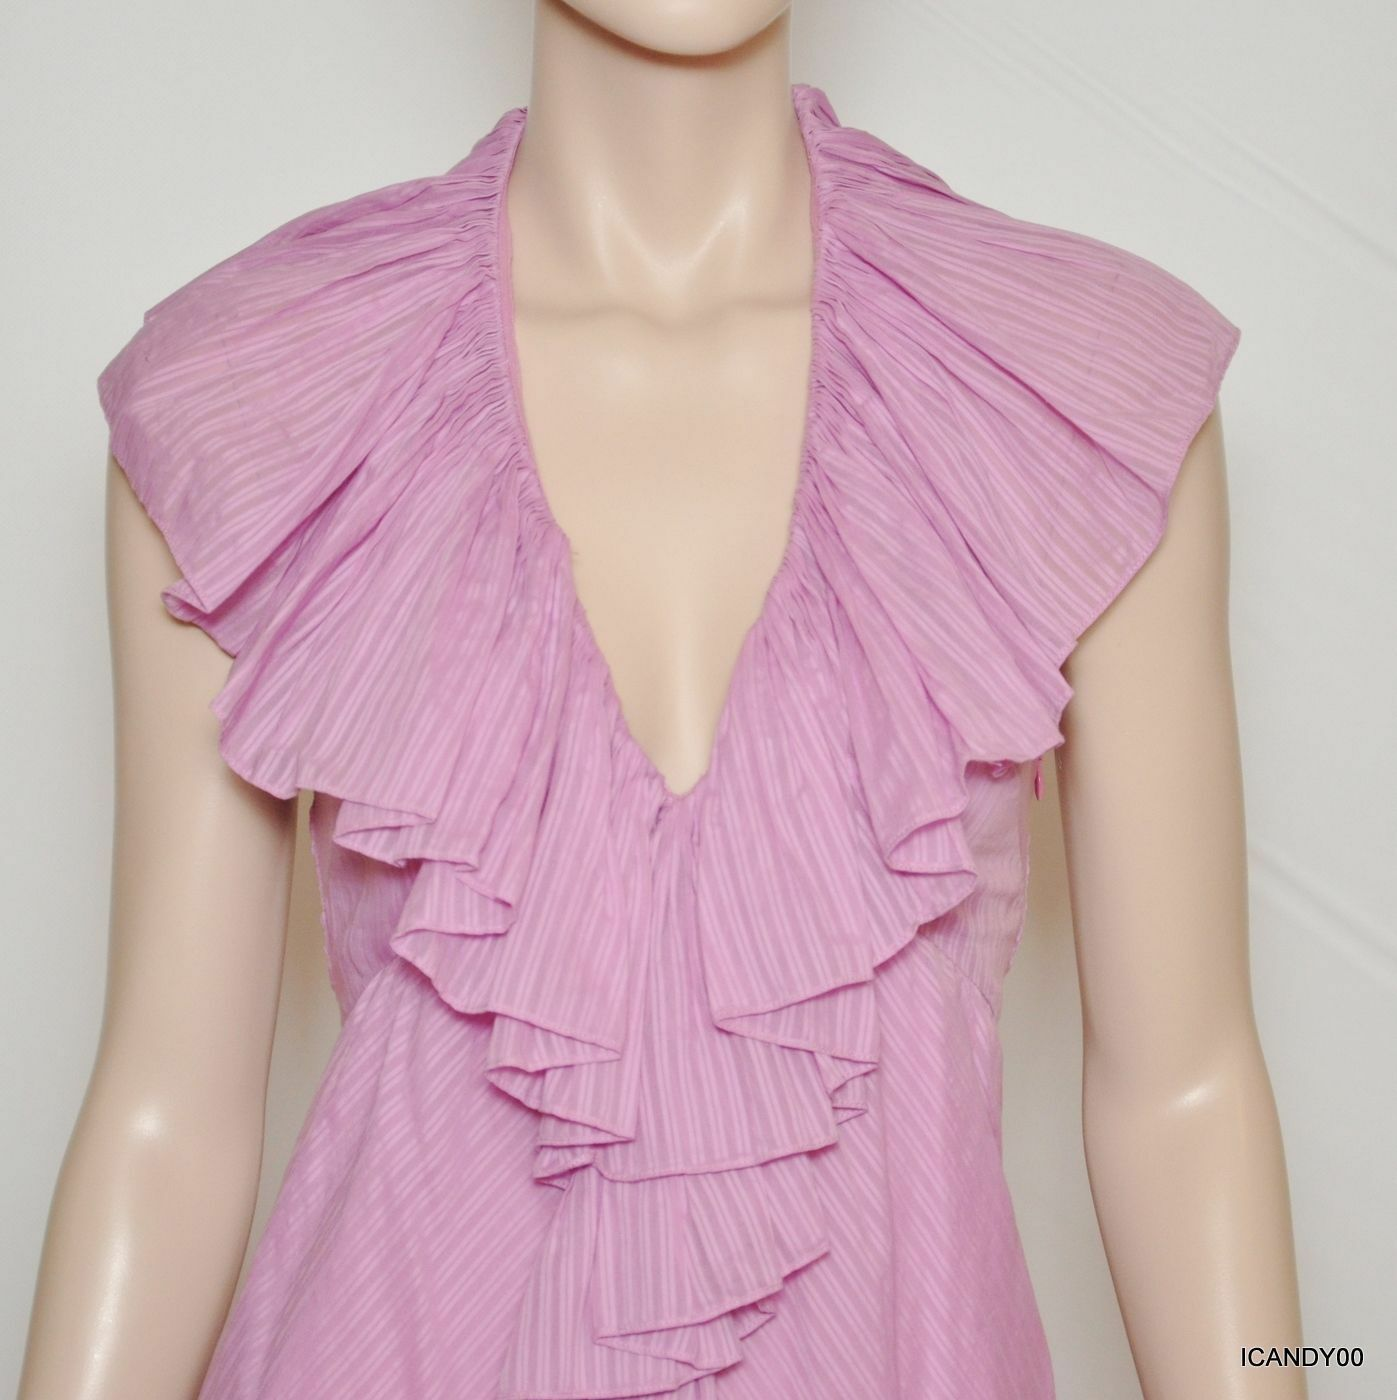 Nwt Nwt Nwt  498 Ralph Lauren bluee Label BOADICEA Ruffled Halter Dress Top Pink 6 d8a0cd